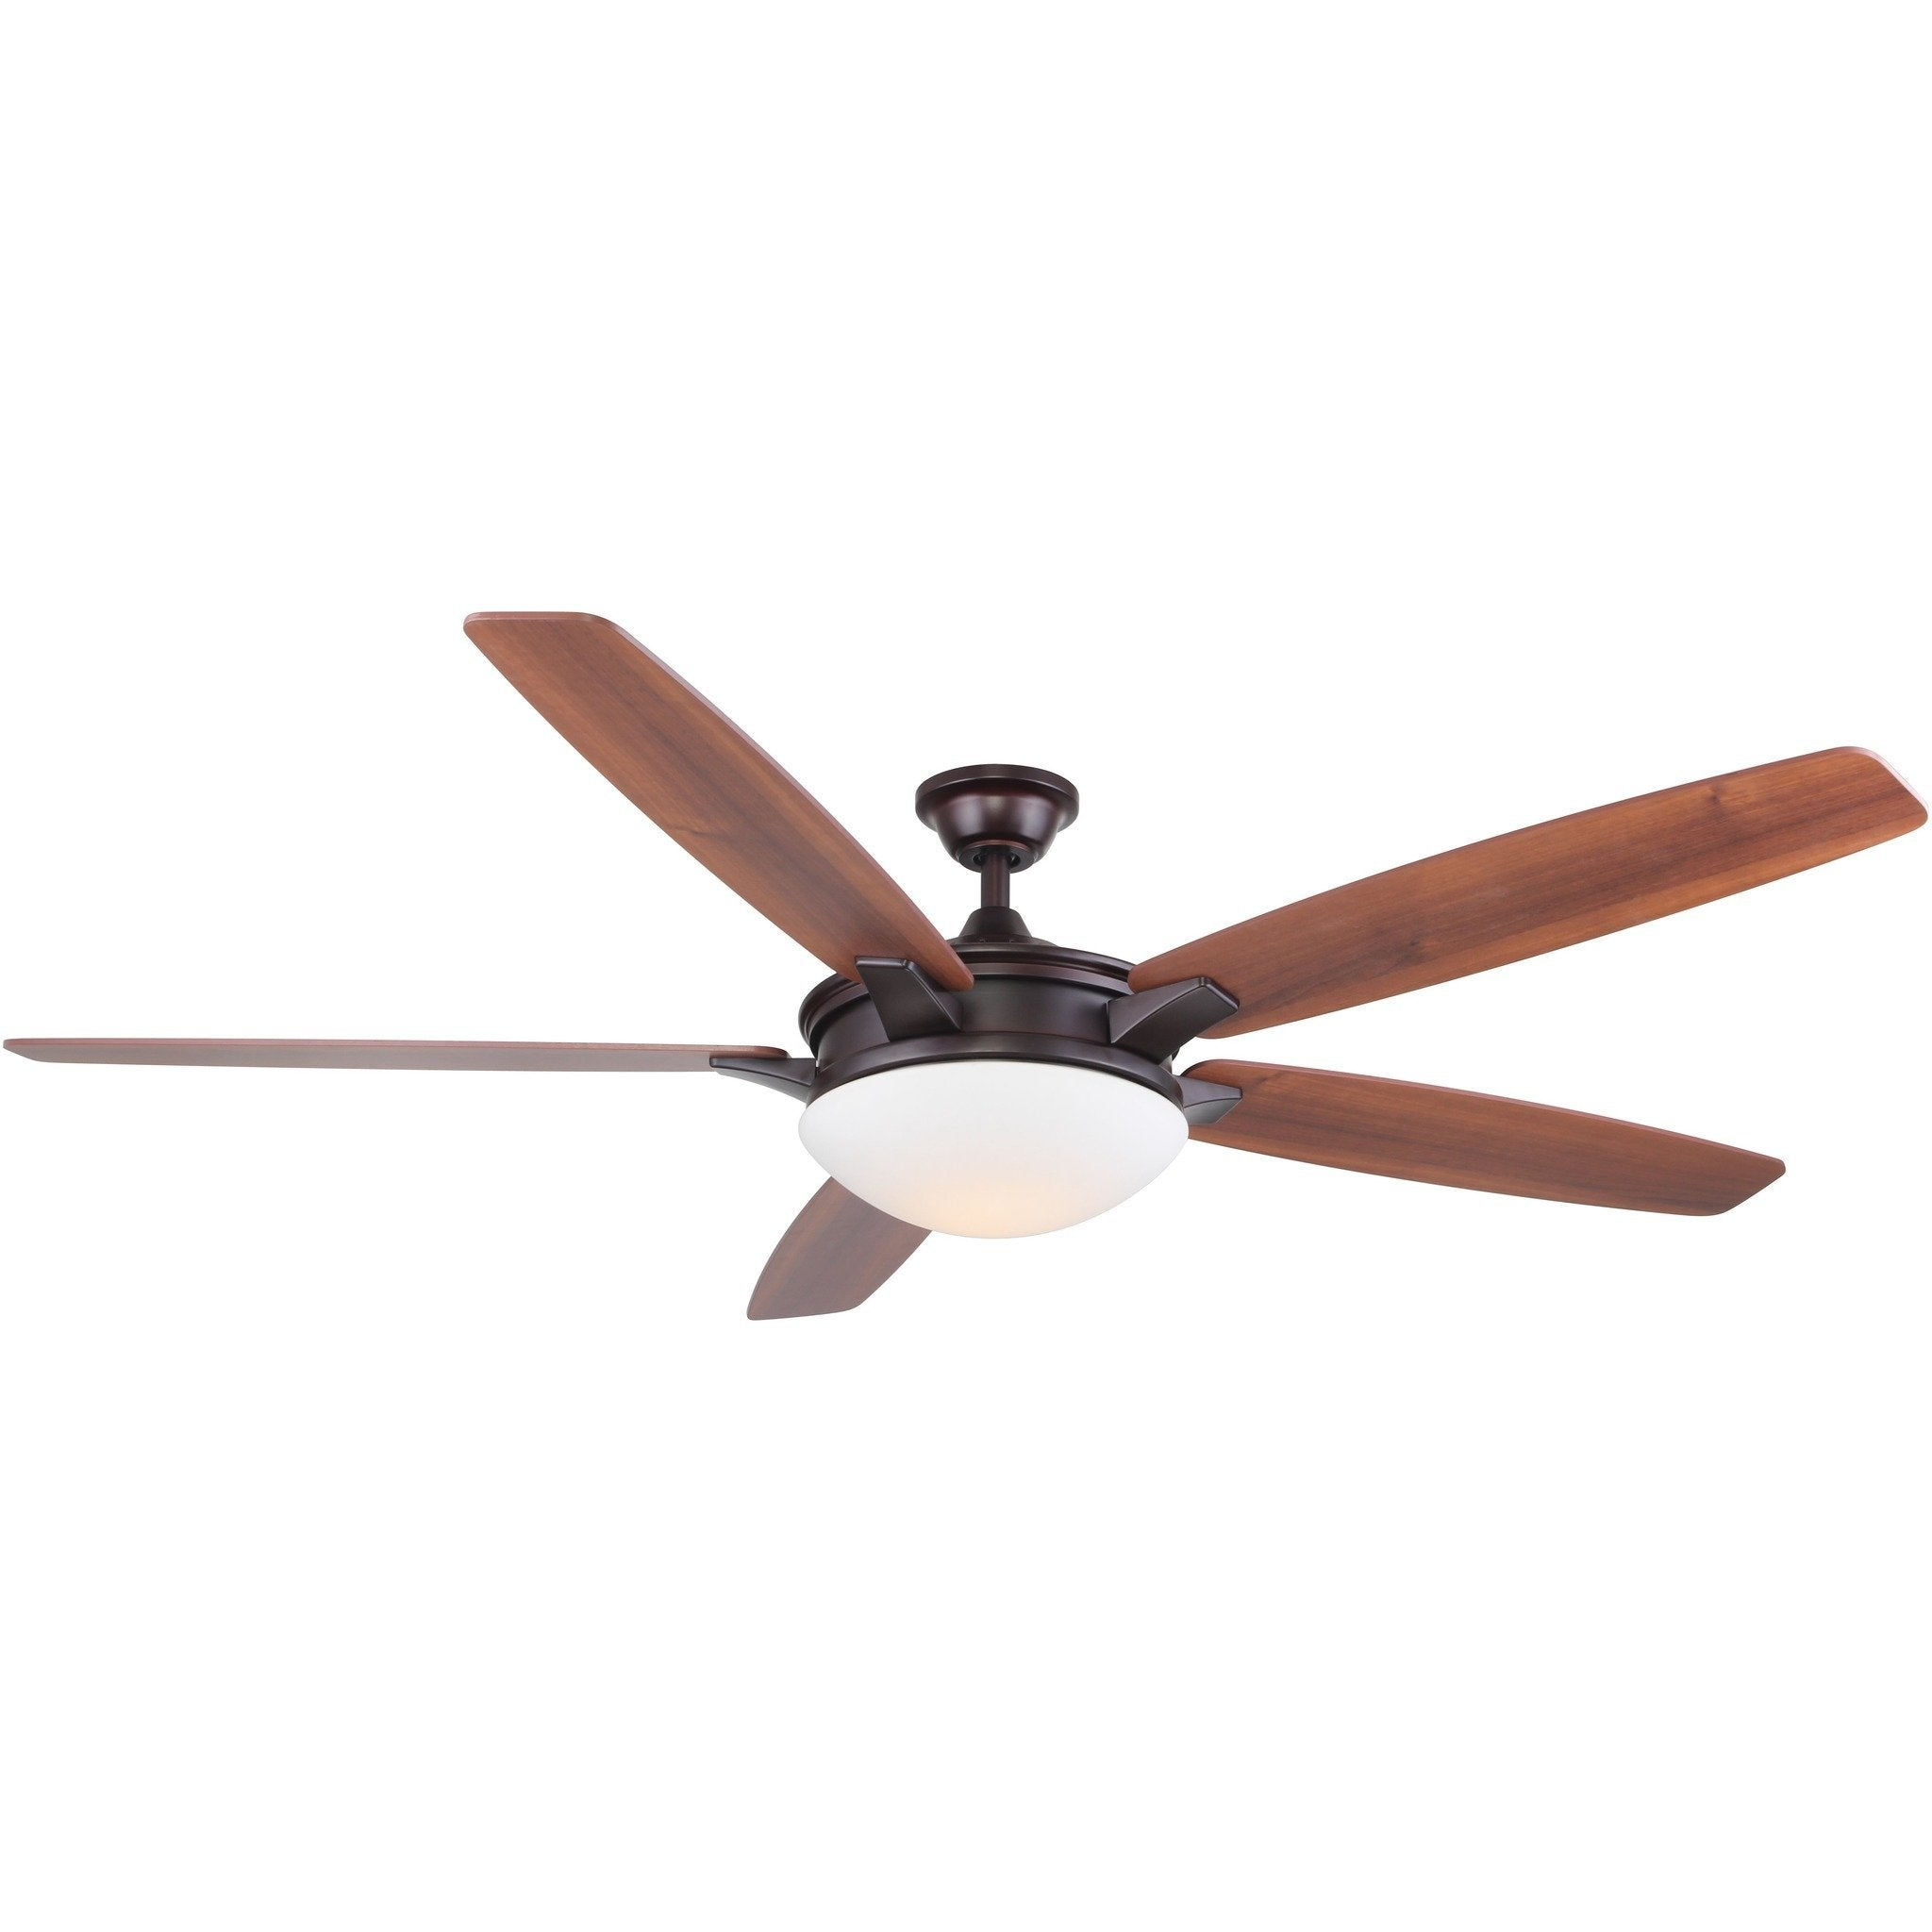 Wind River Novato Ceiling Fan